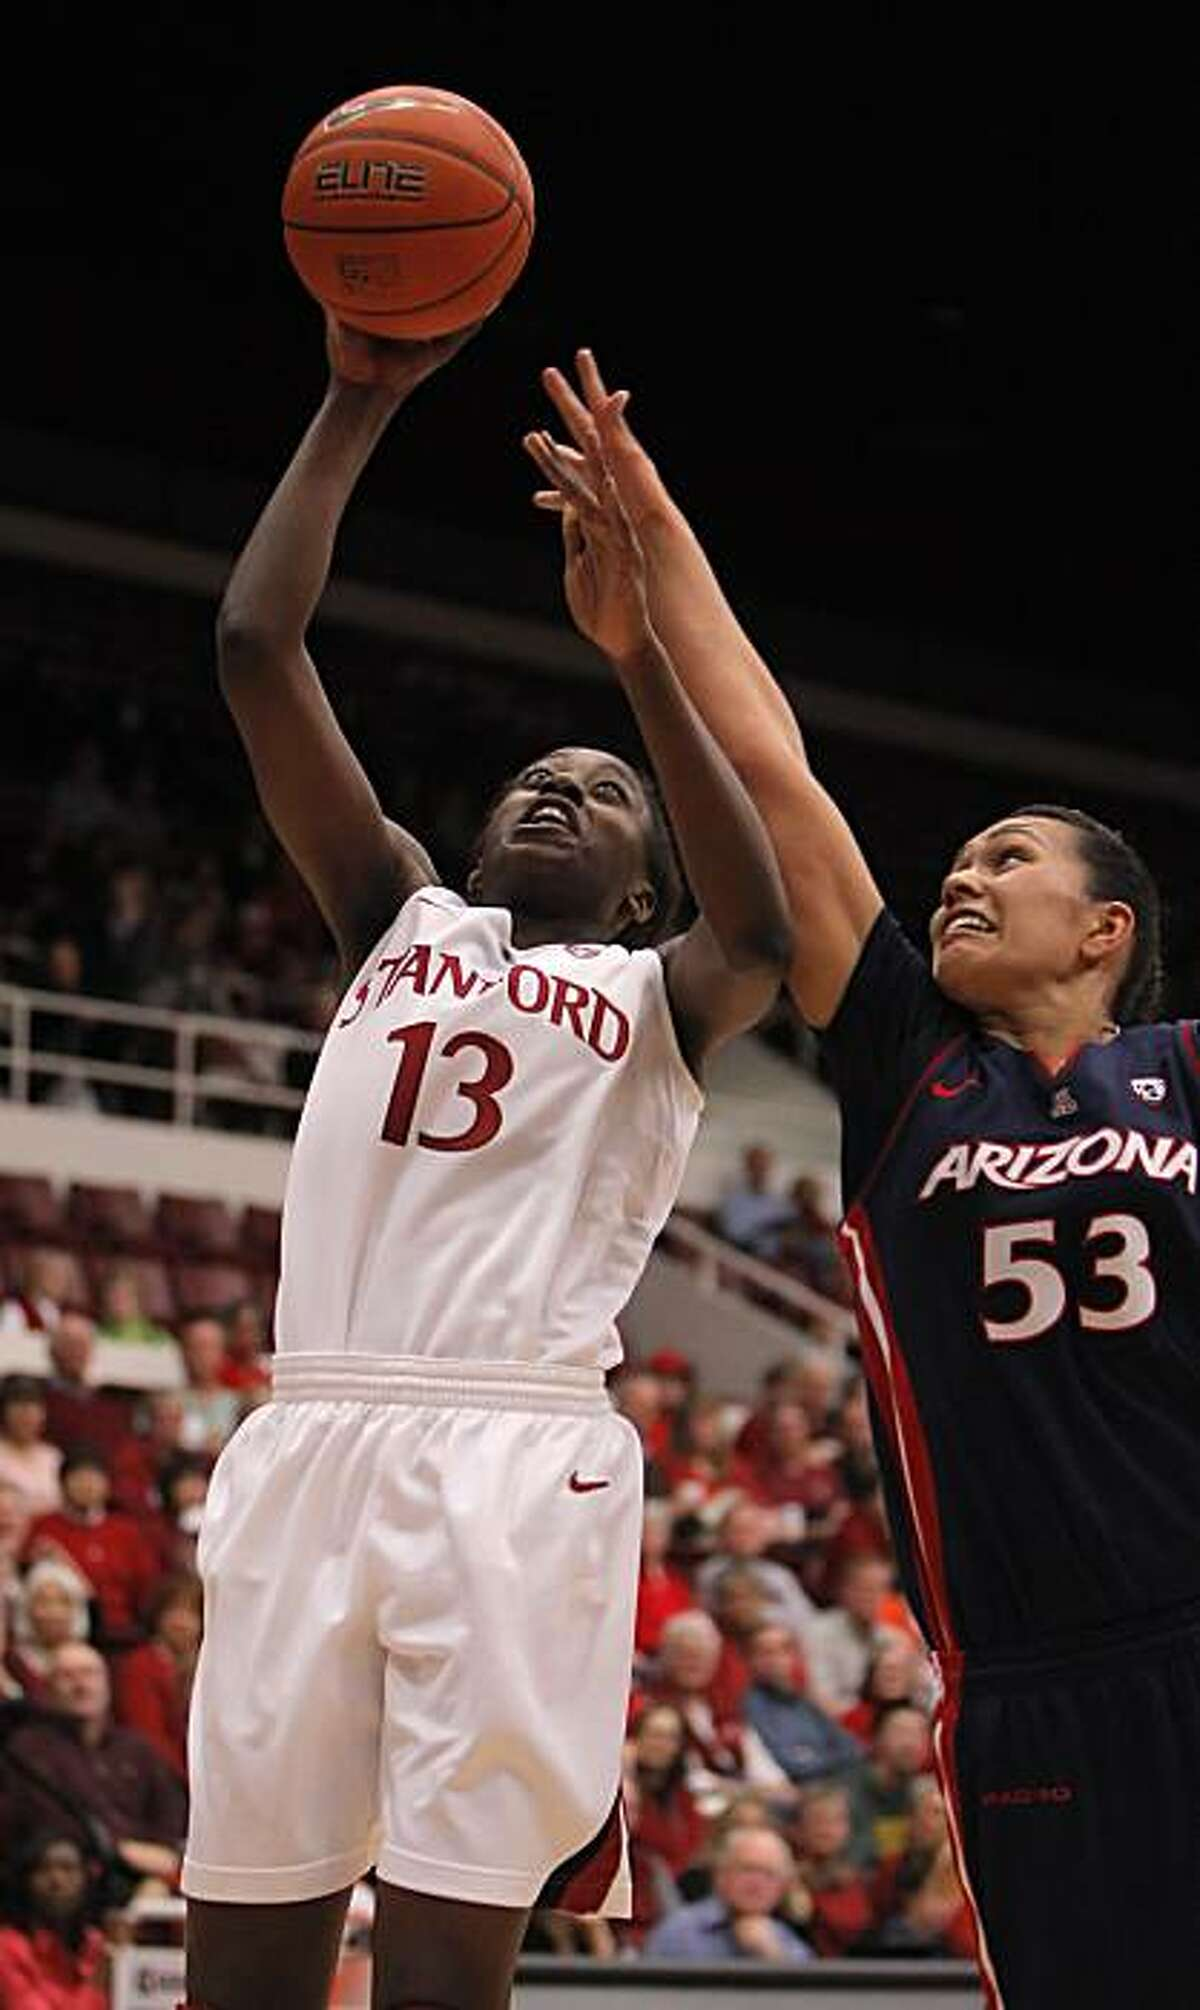 Chiney Ogwumike puts up a shot in the second period as Arizona's Soana Lucet tries to defent. The Stanford women's basketball team played the Arizona Wildcats at Maples Pavilion at Stanford, Calif., on Thursday, January 6, 2011. The Cardinal defeated the Wildcats, 87-54.